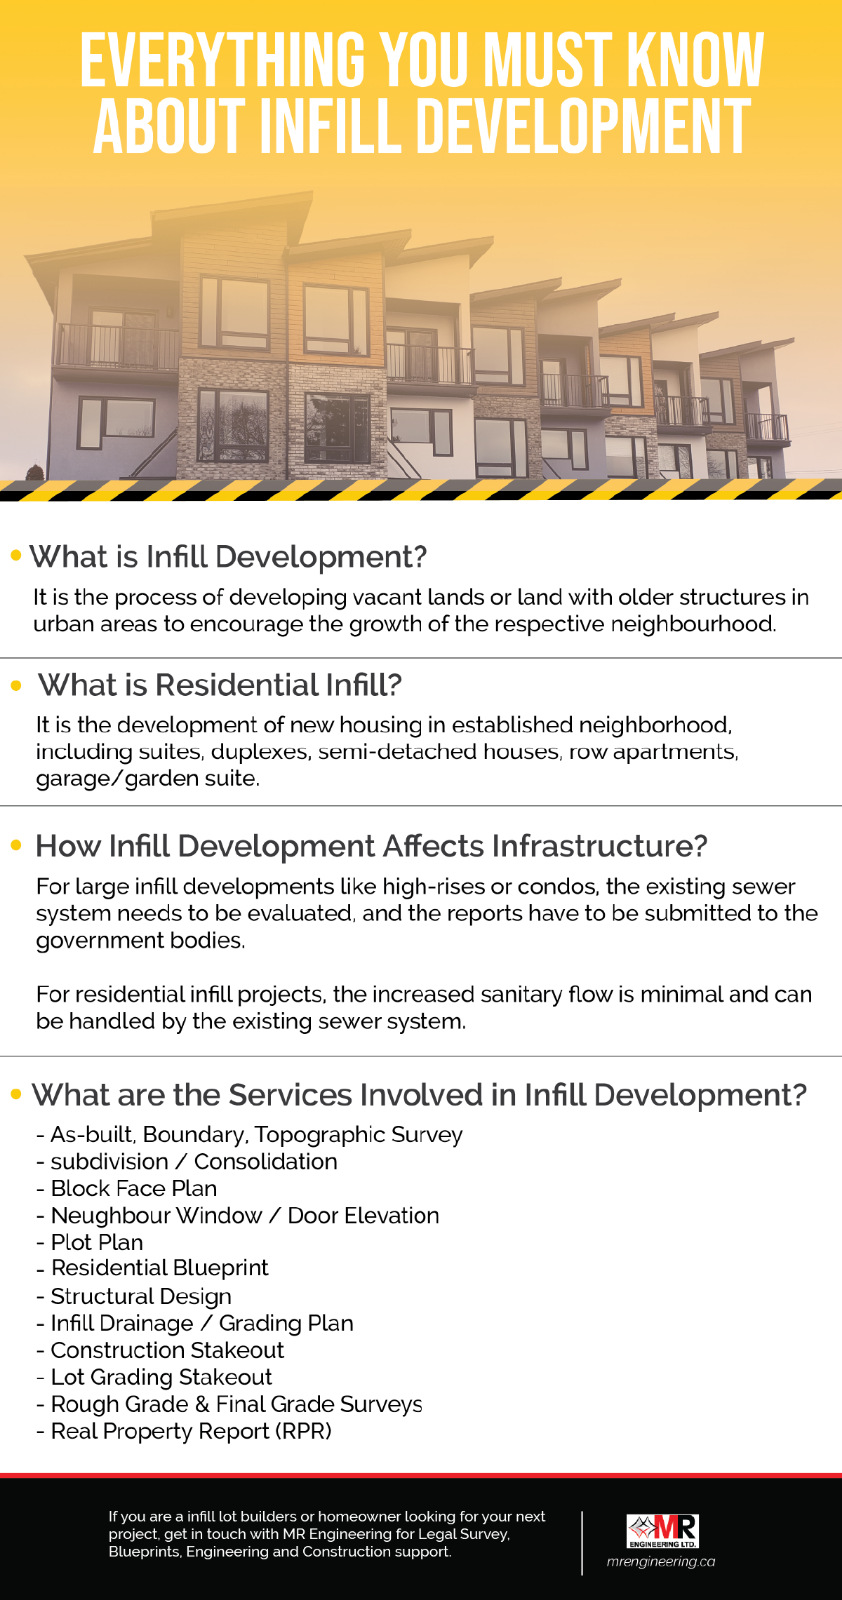 You Must Know About Infill Development